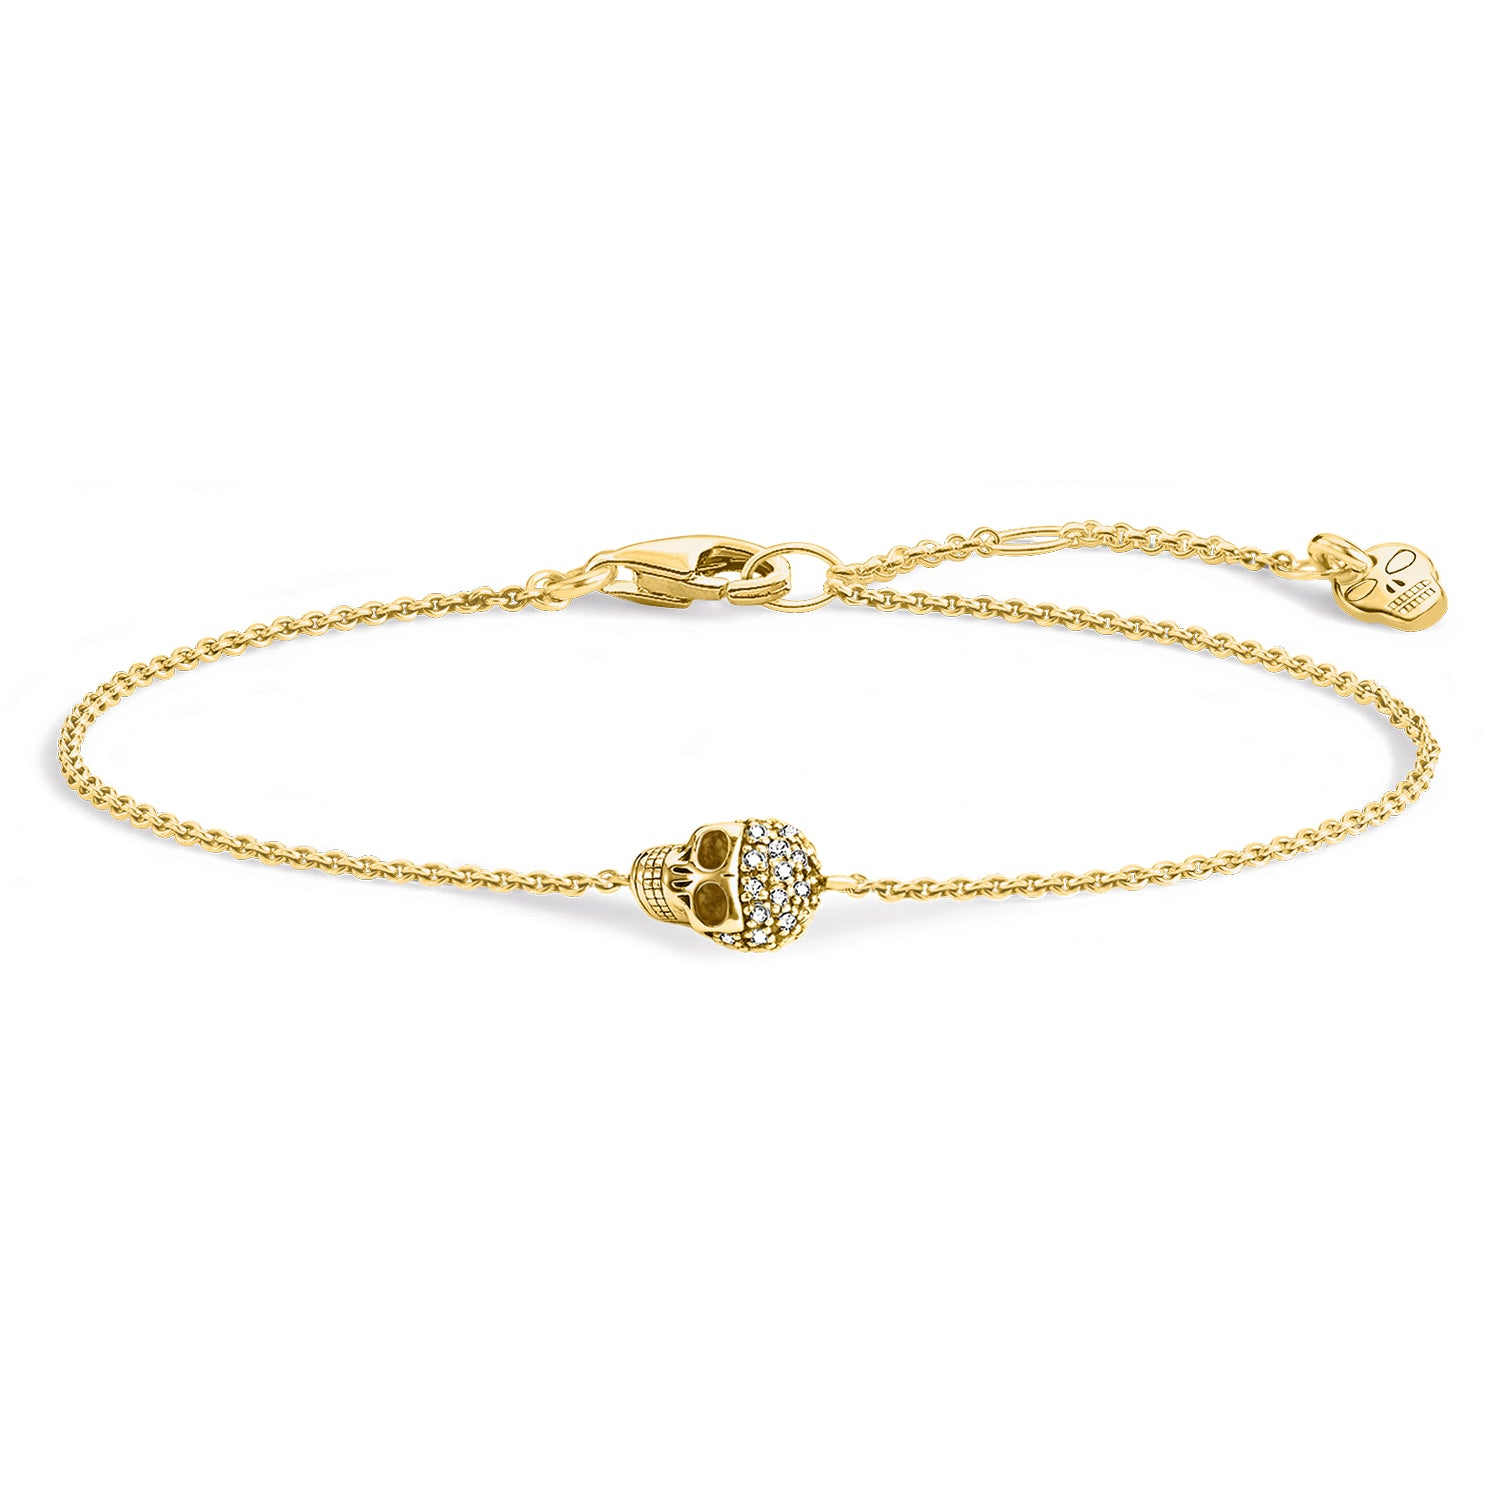 Thomas Sabo Skull Gold Diamond Bracelet A0028-924-39